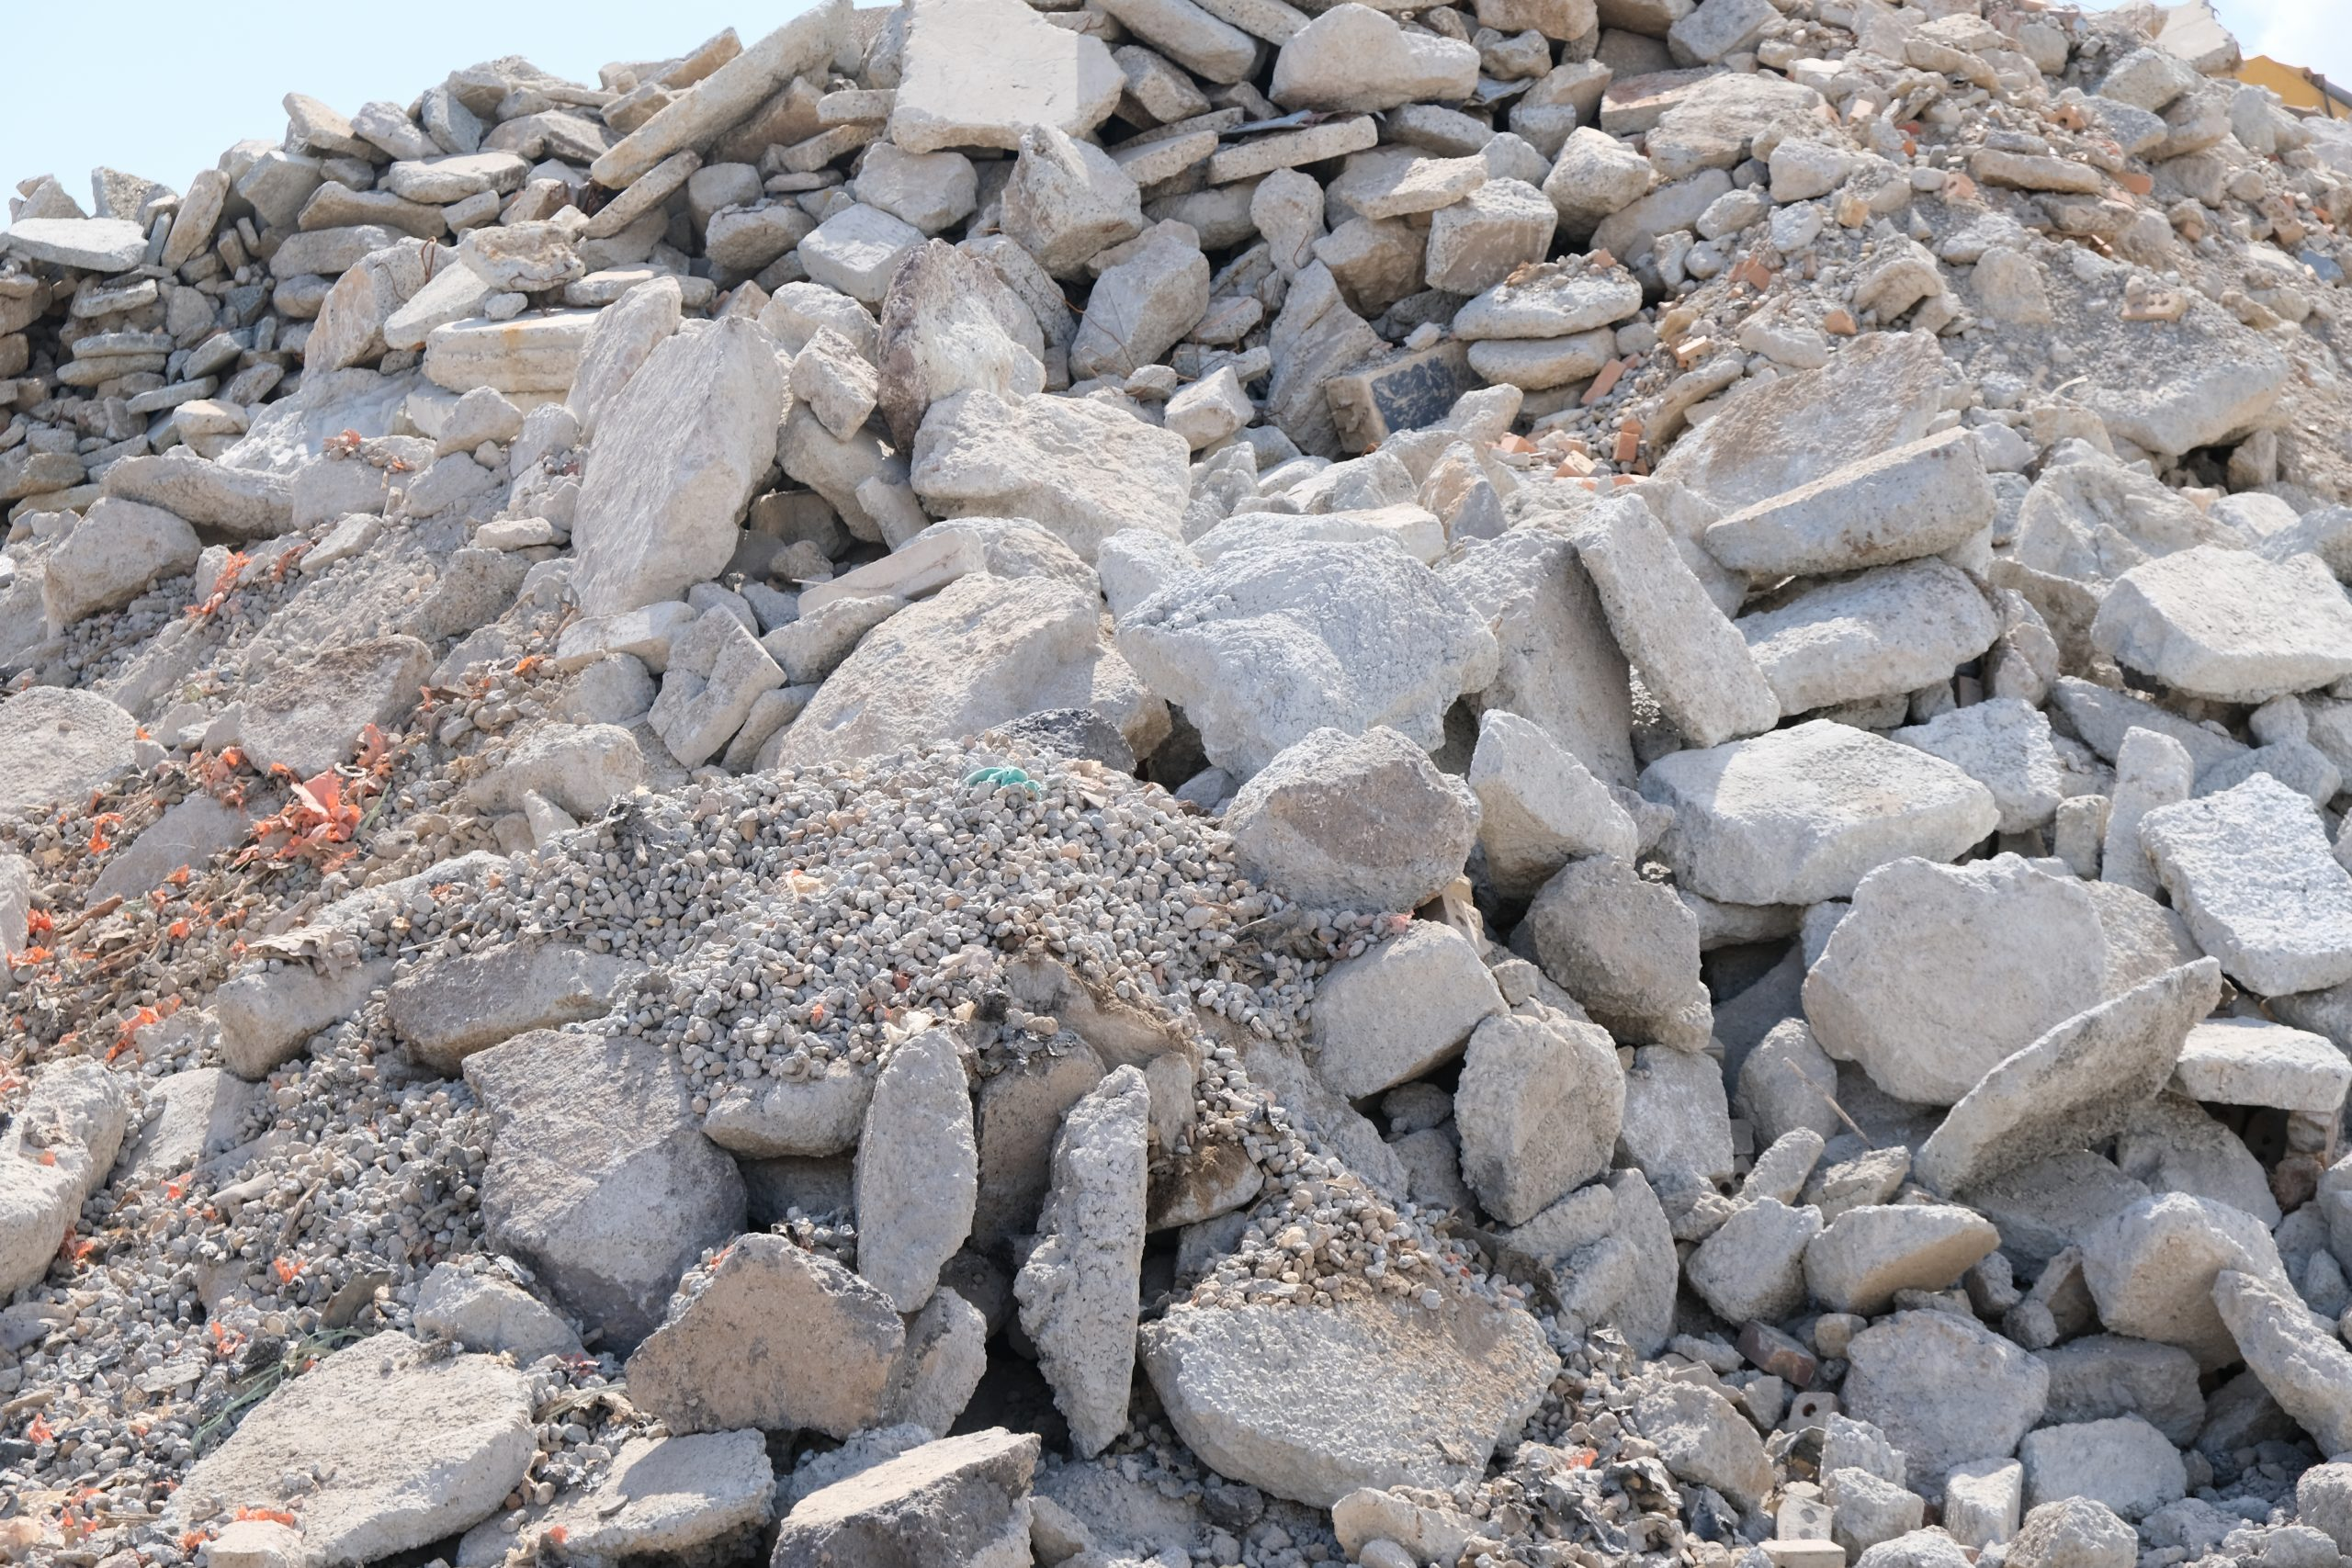 Large pile of concrete waste, waiting to be processed and recycled.